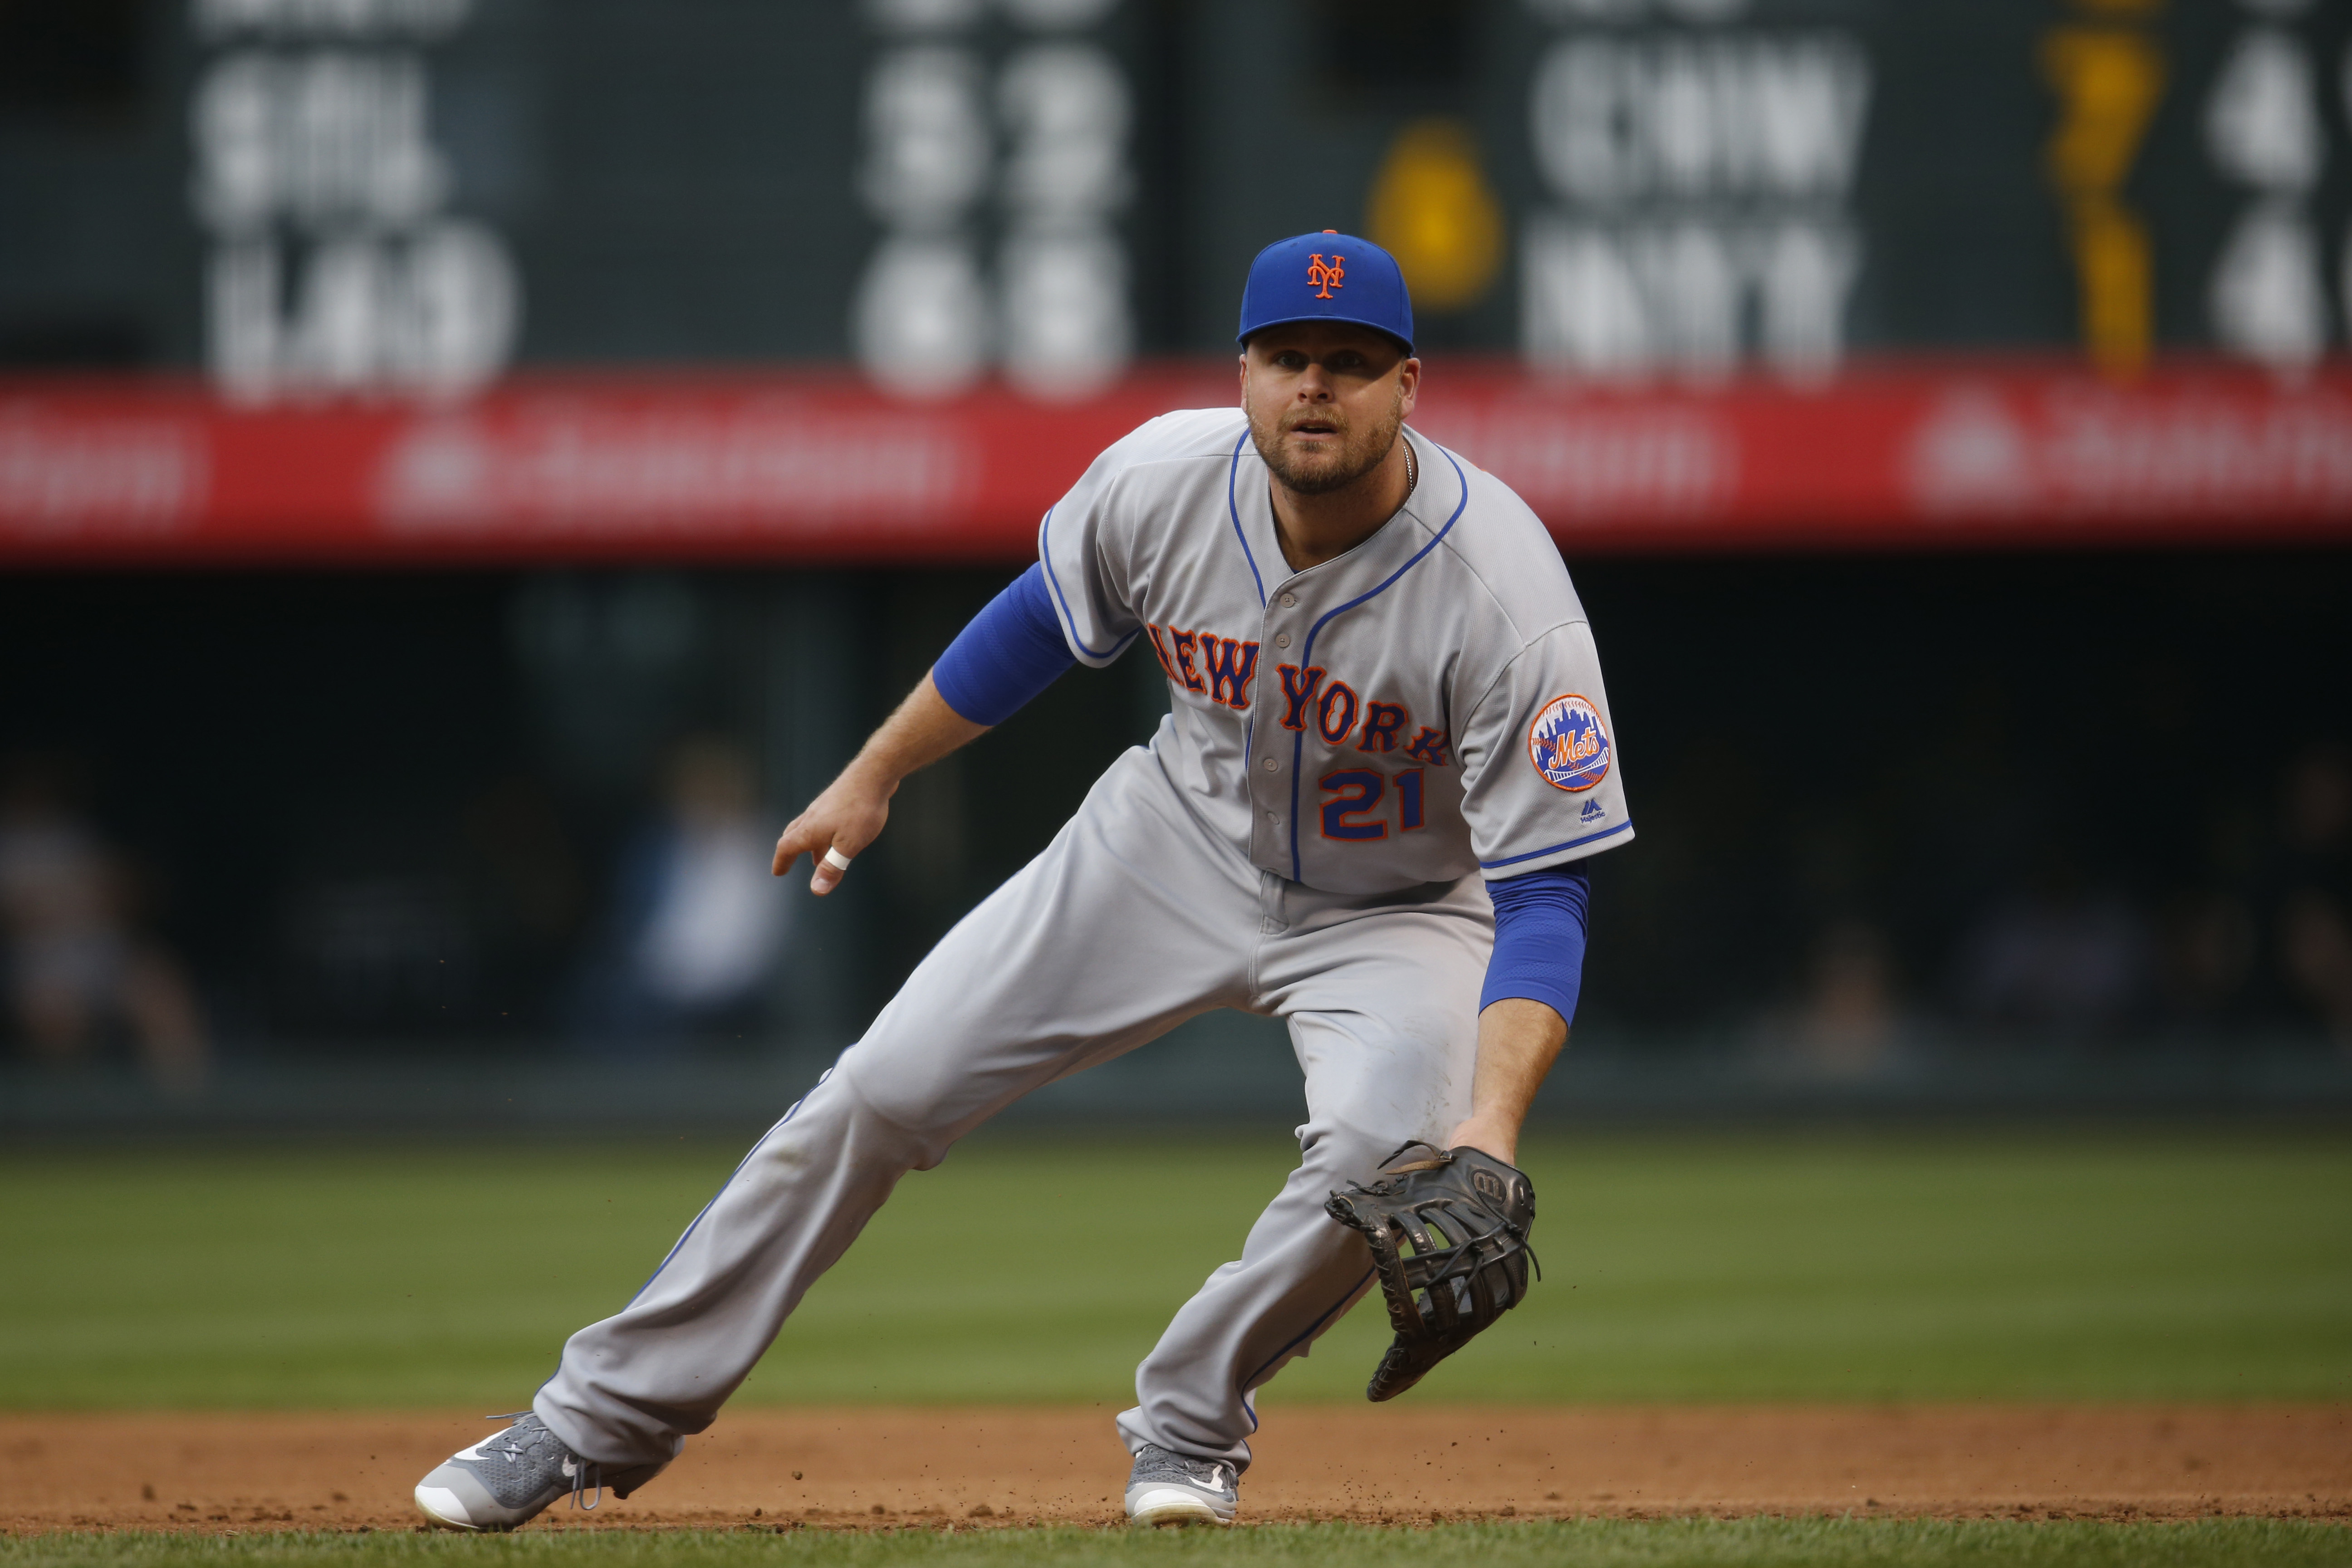 FILE - In this May 13, 2016, file photo, New York Mets first baseman Lucas Duda (21) prepares to field a ball in the first inning of a baseball game against the Colorado Rockies in Denver. Duda will come off the disabled list this weekend after recovering